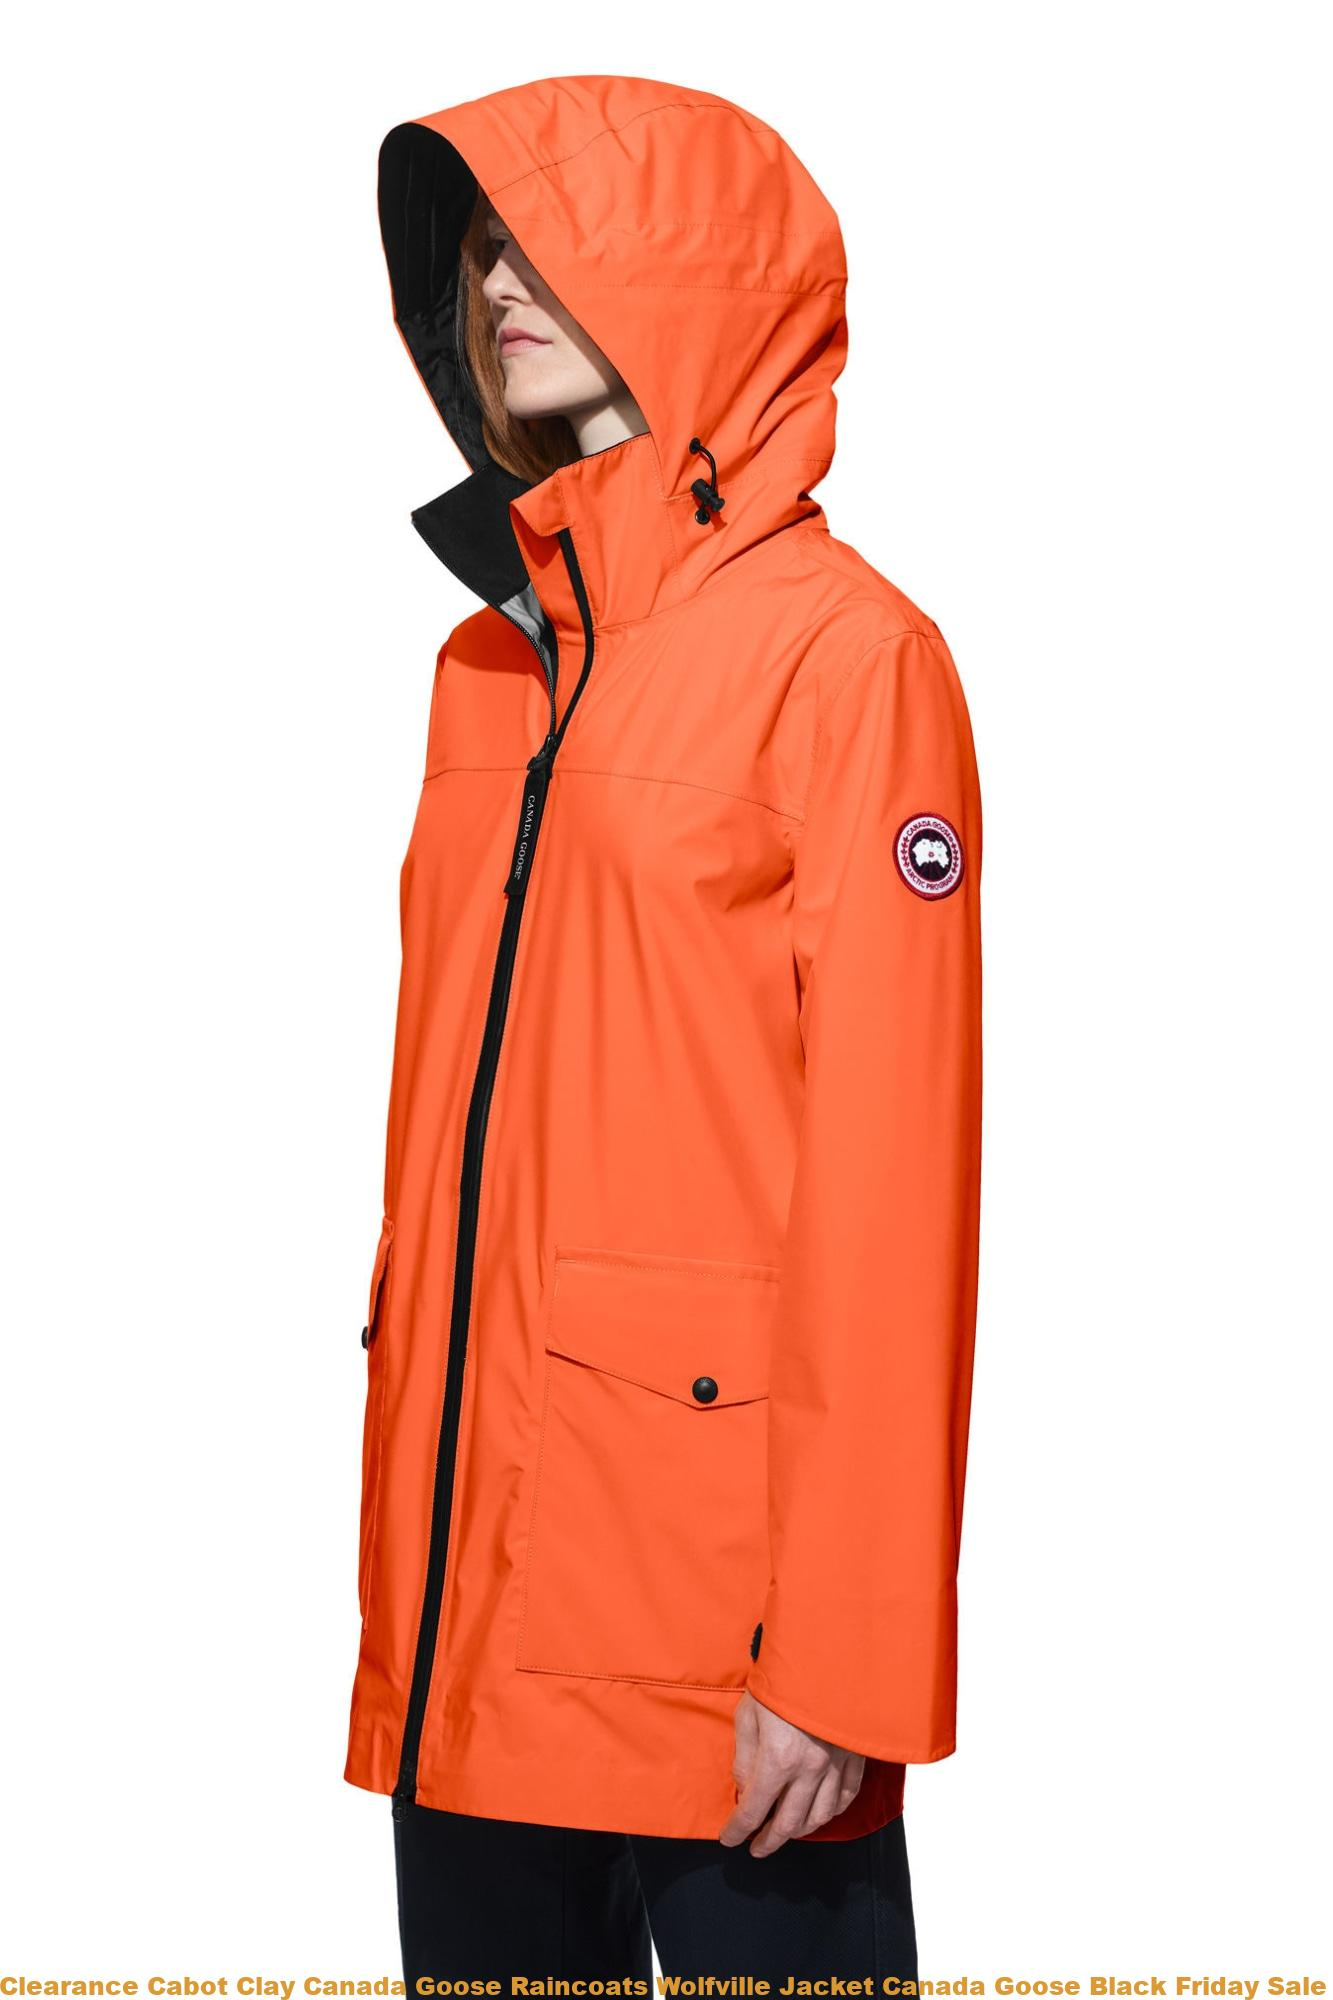 0bd50fbe440 Clearance Cabot Clay Canada Goose Raincoats Wolfville Jacket Canada Goose  Black Friday Sale Uk 5604LZ